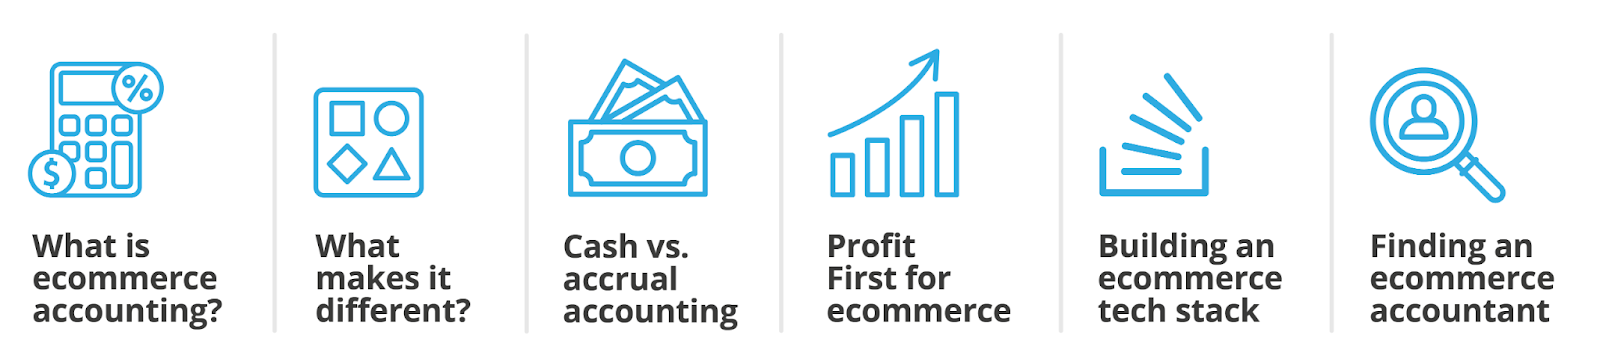 ecommerce fundamentals series chapters